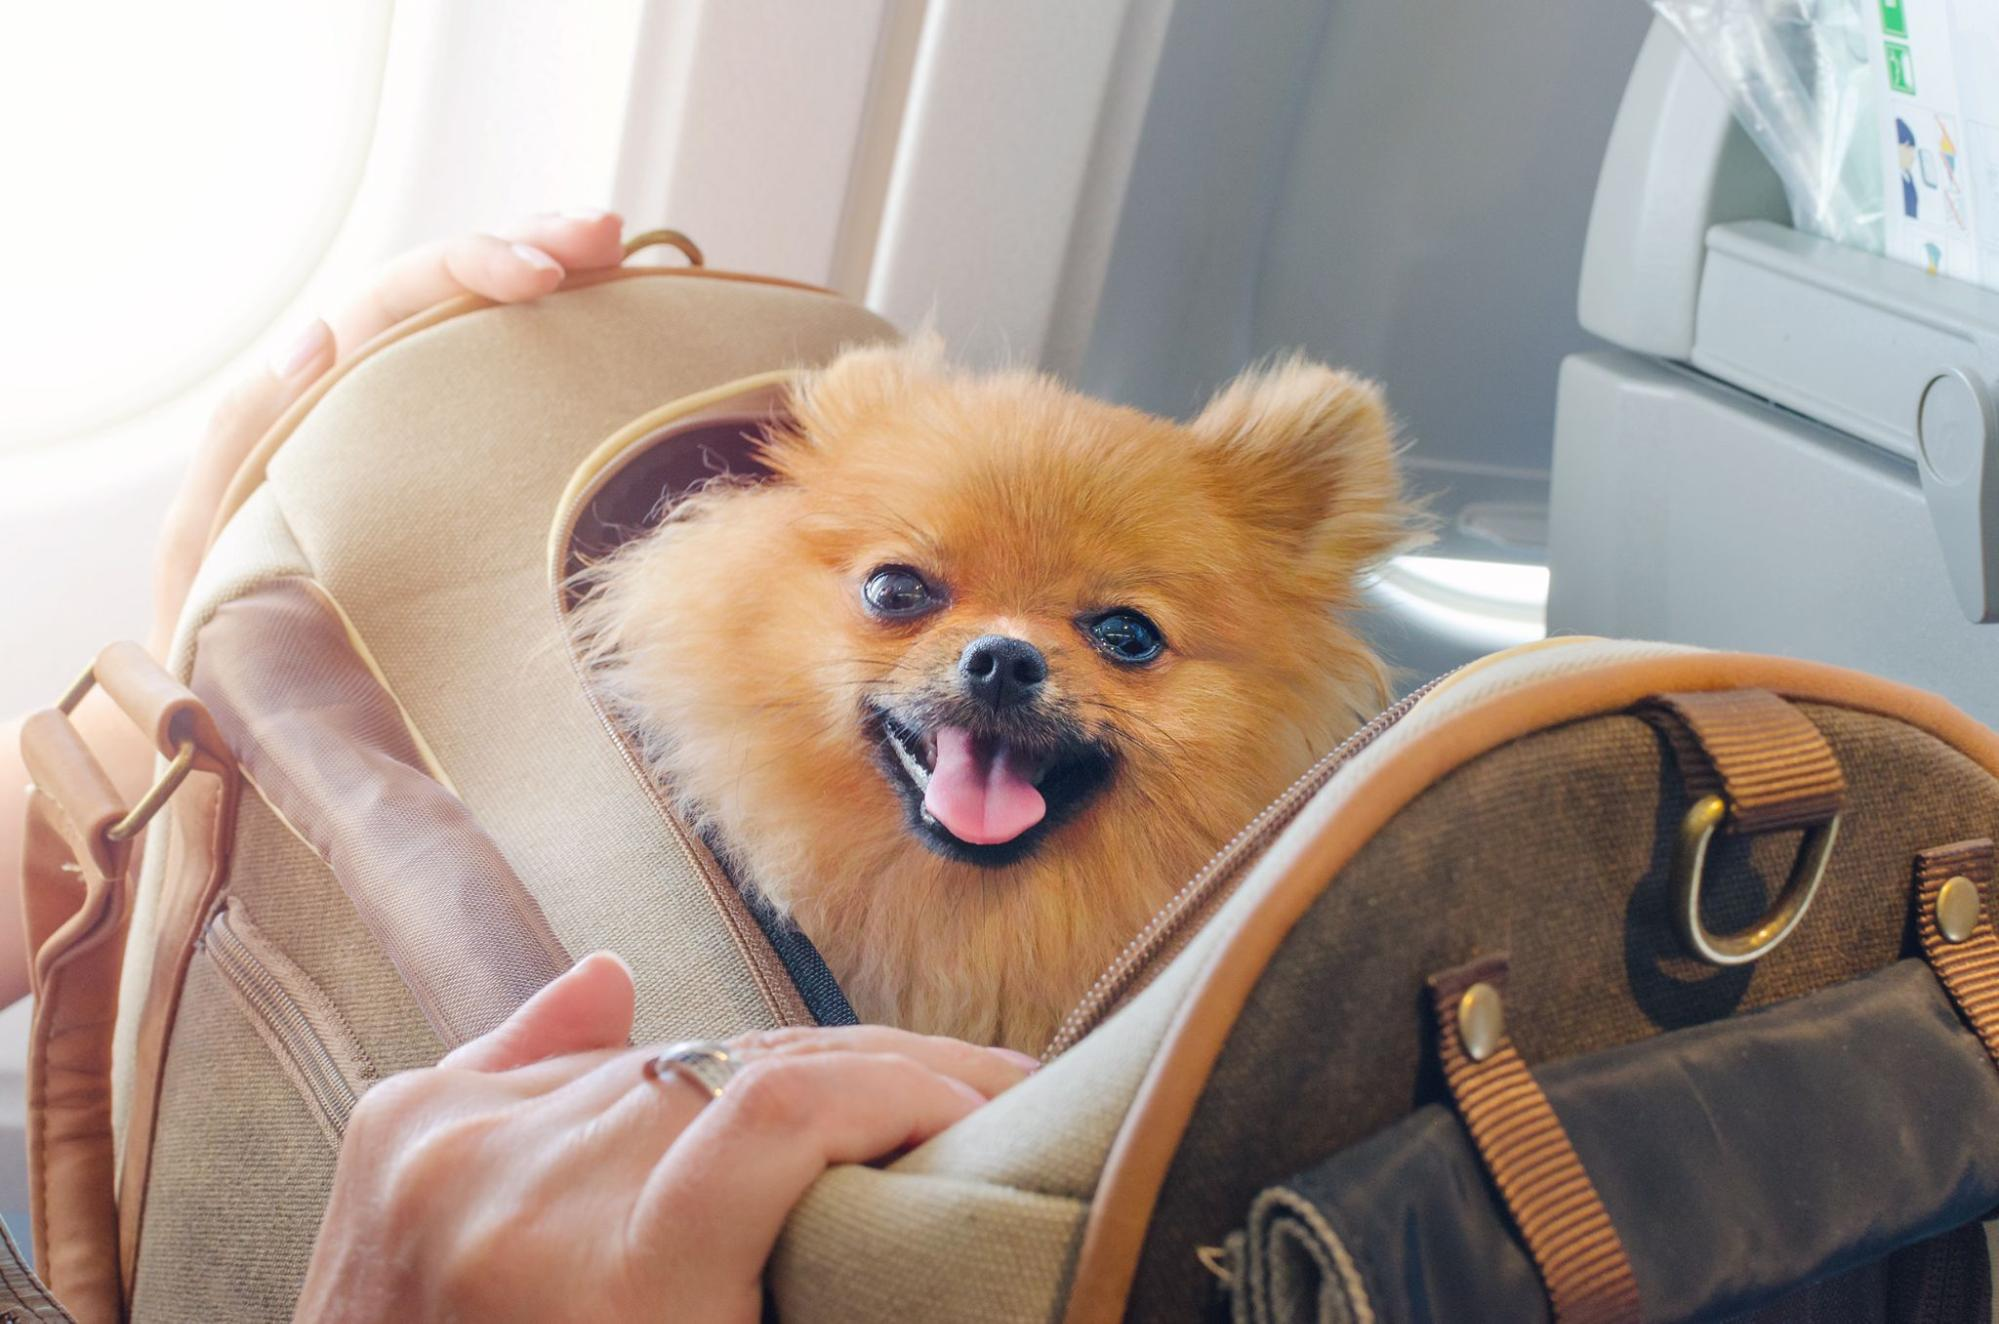 Pomarianian dog being transported in a carrying crate on a plane.